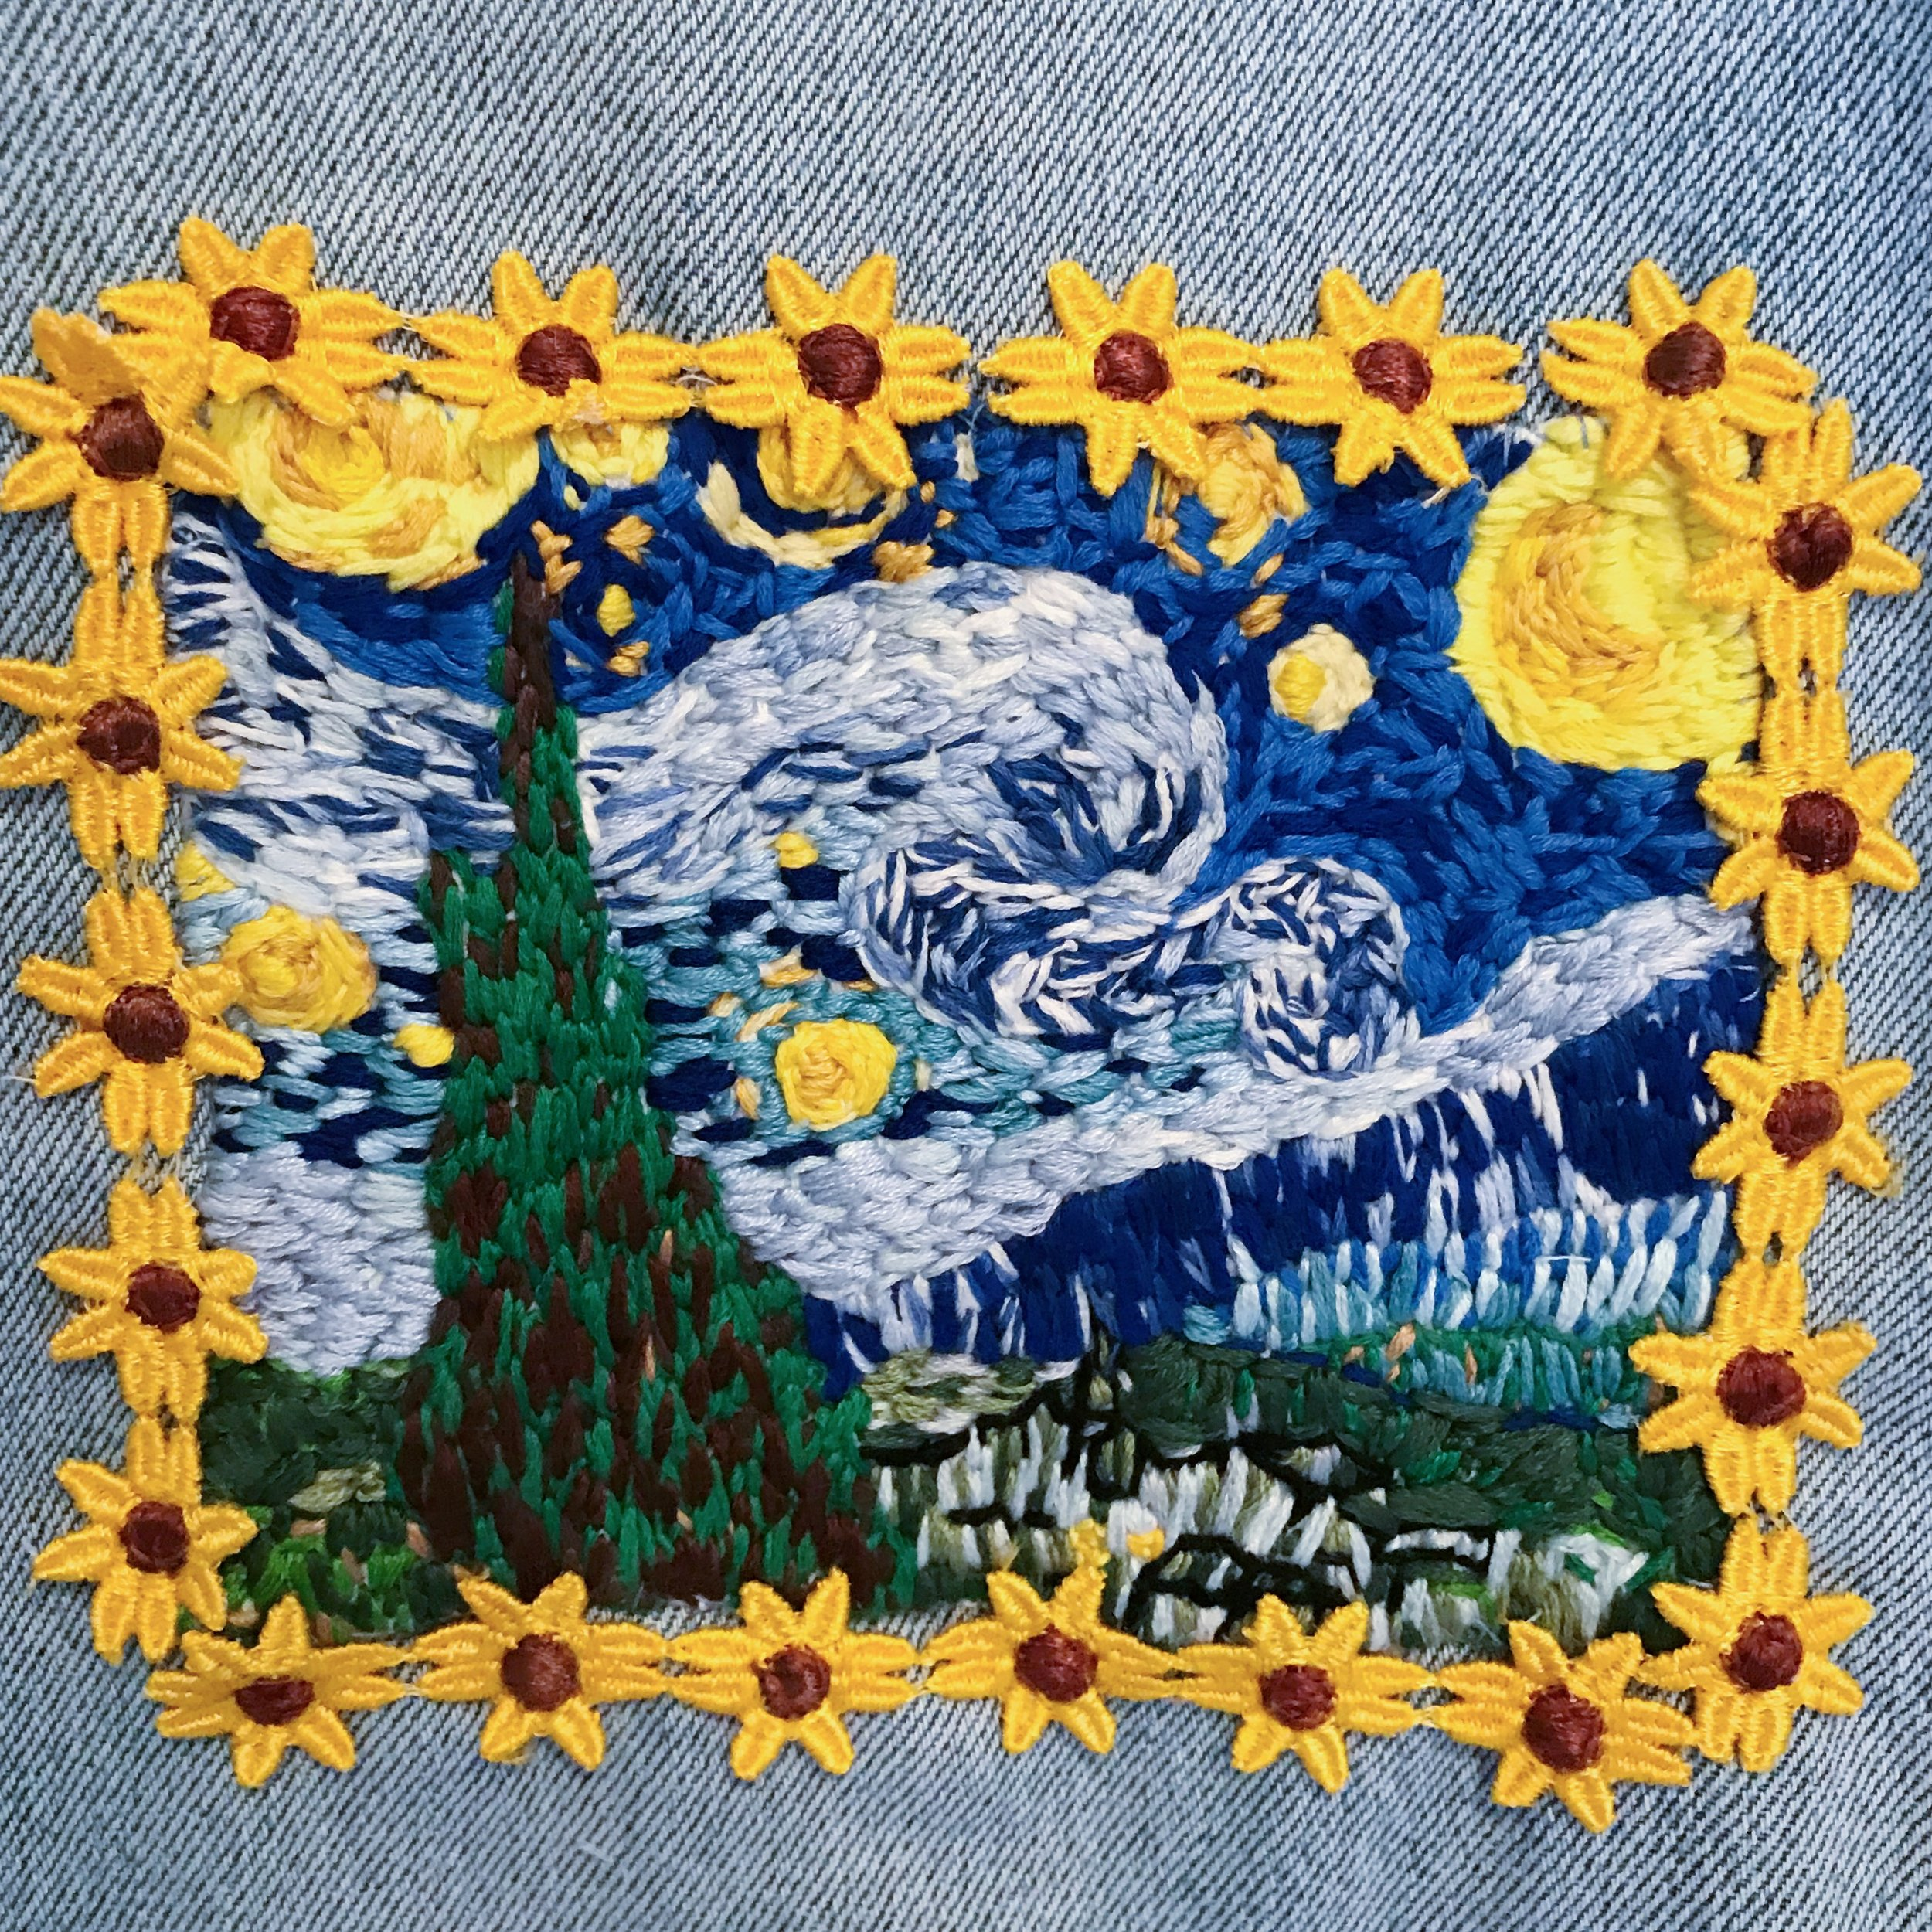 """Vincent van Gogh's """"The Starry Night"""" hand embroidered on denim pants"""